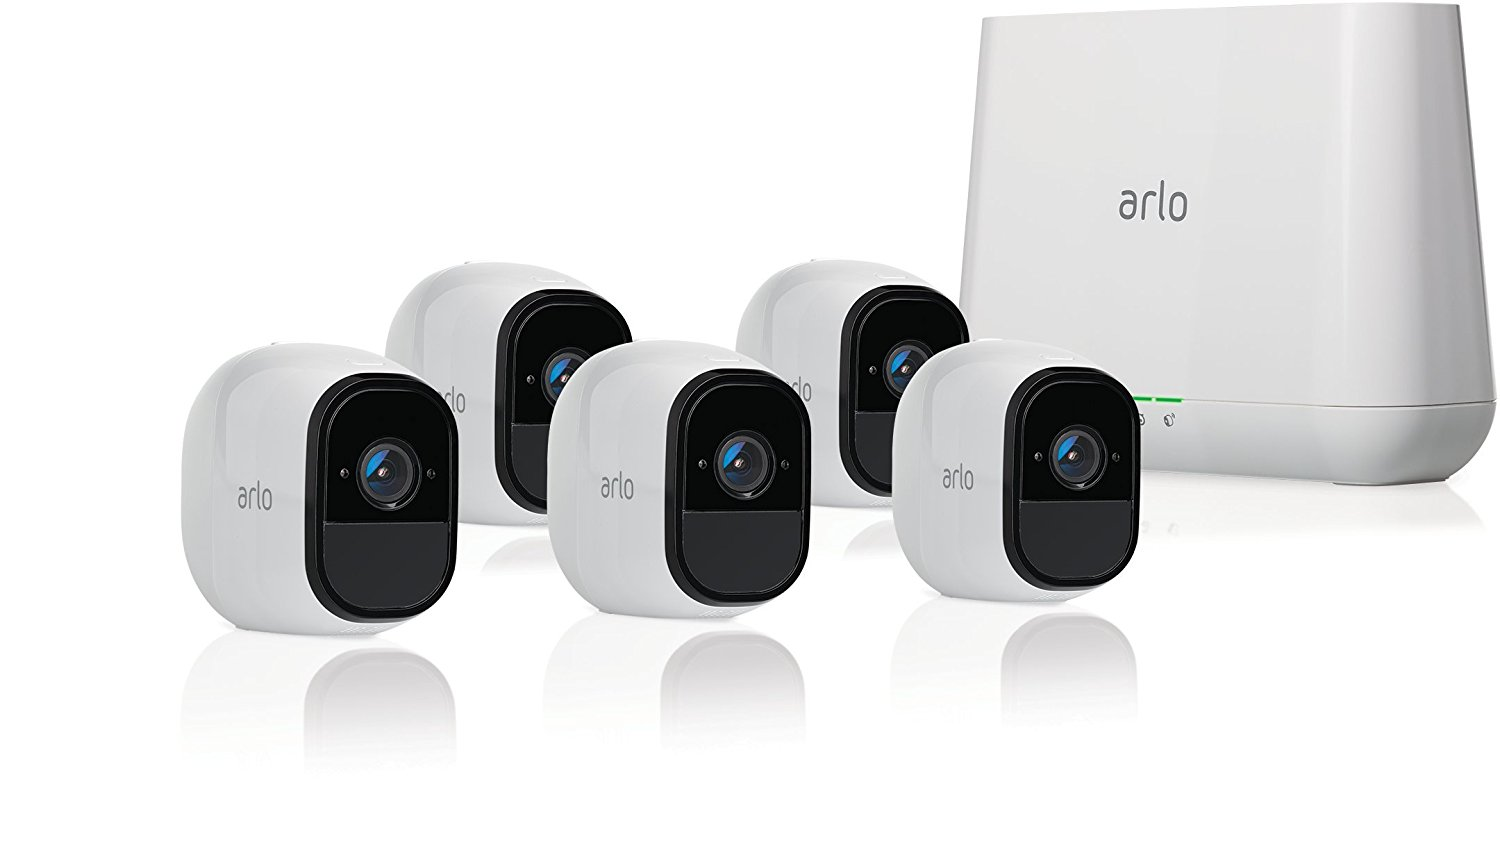 Arlo Pro Security System